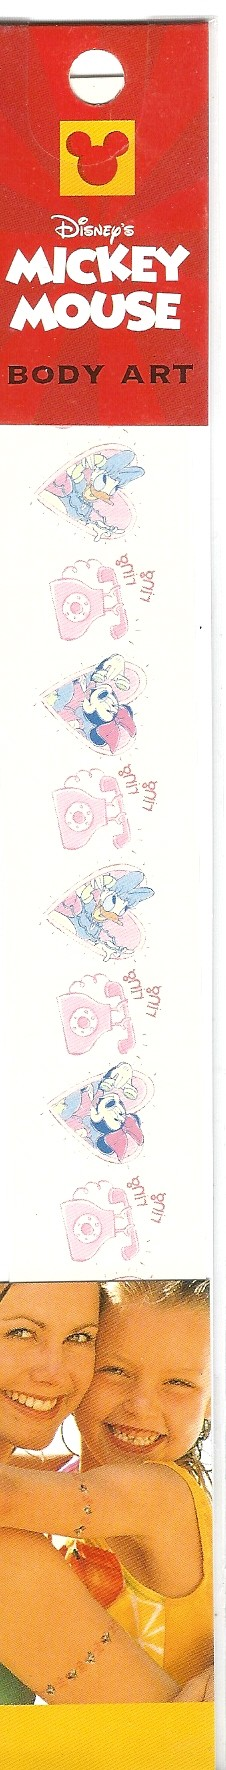 Disney Minnie Mouse Daisy Duck Body Art Temporary Tattoo's Arm / Wrist / Ankle Band